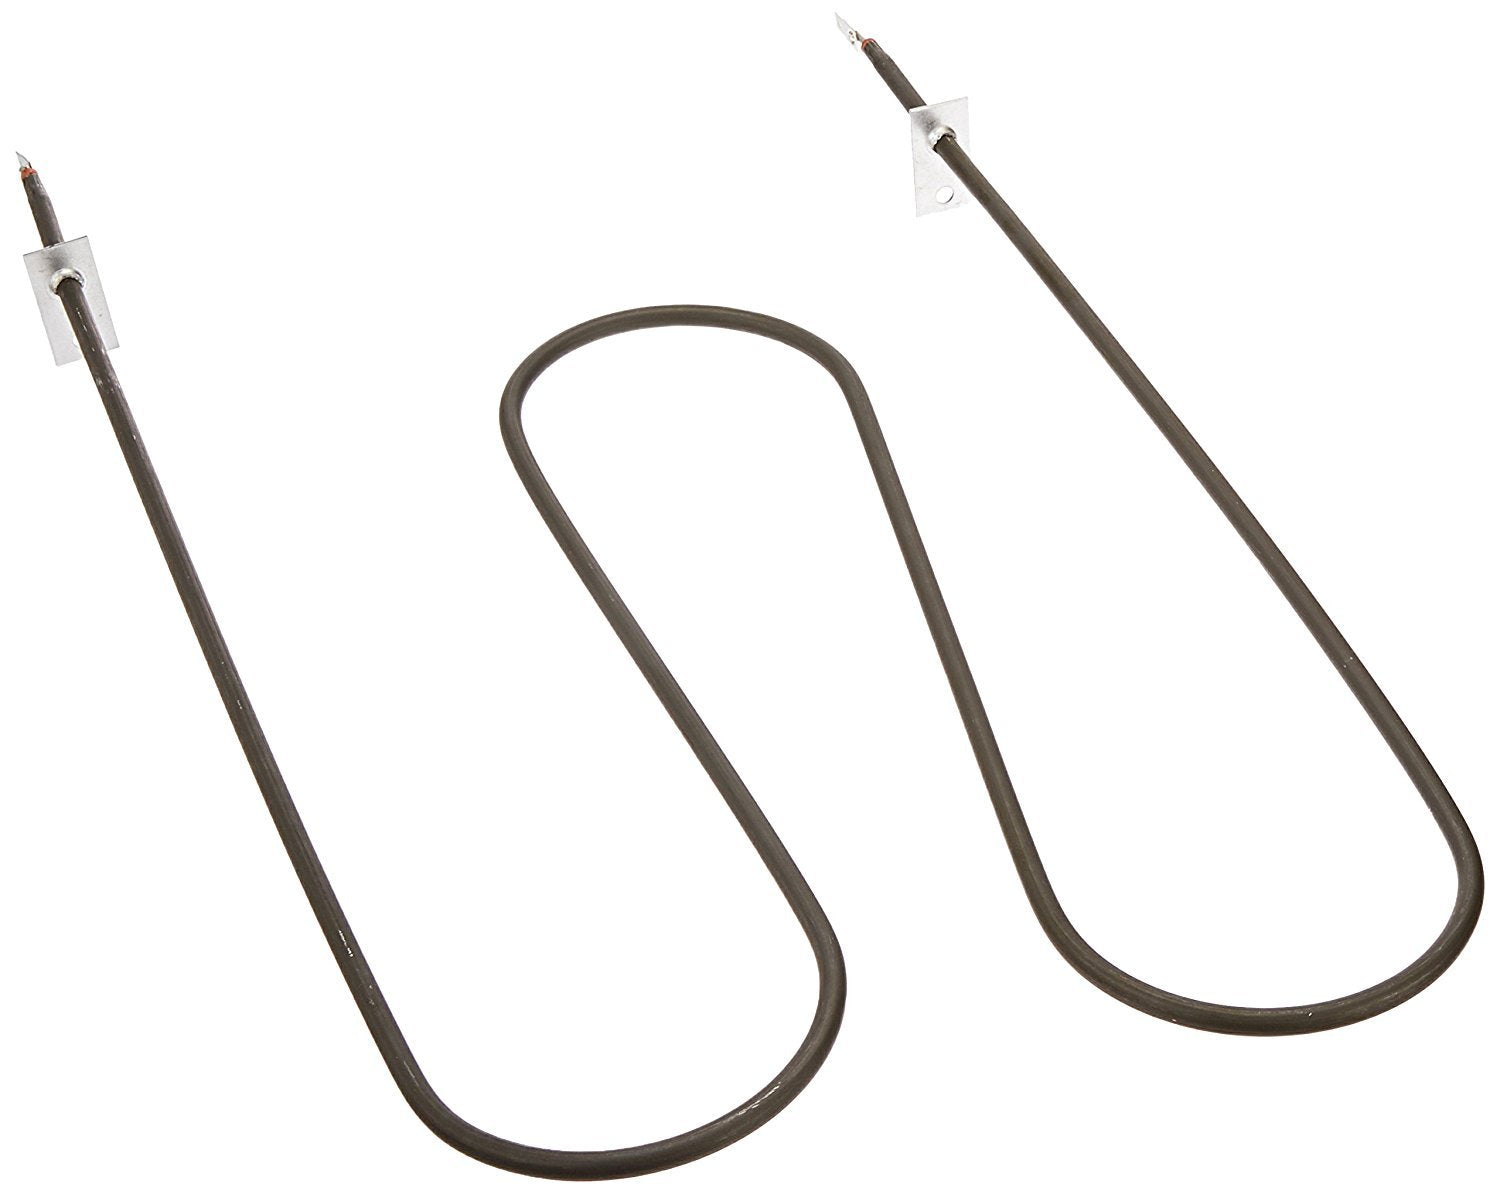 Kenmore / Sears 79015031401 Oven Broil Element Replacement